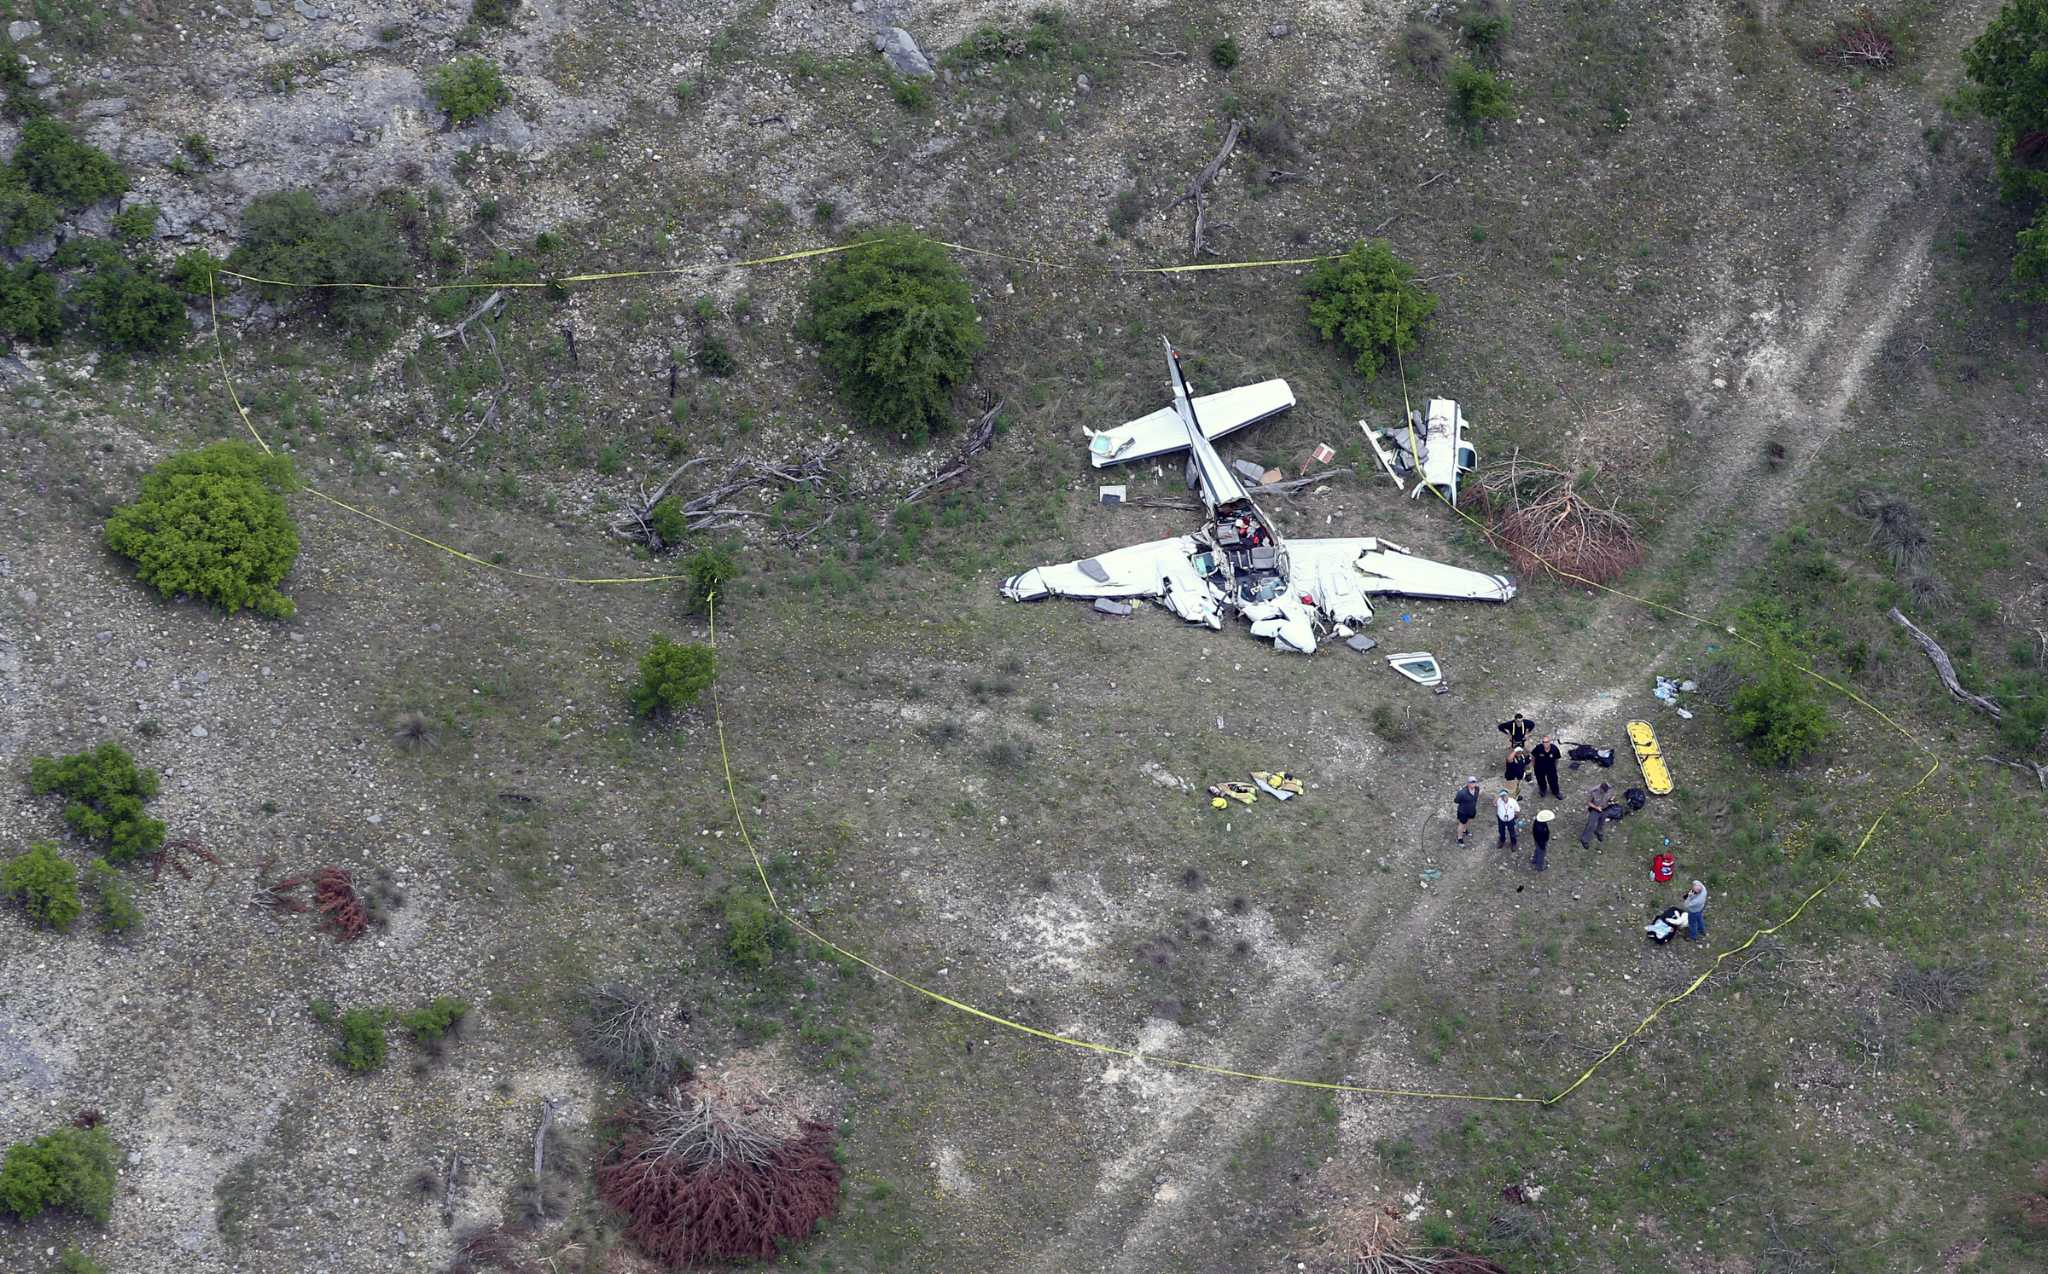 Doomed plane fell from sky, unable to keep airspeed, investigator